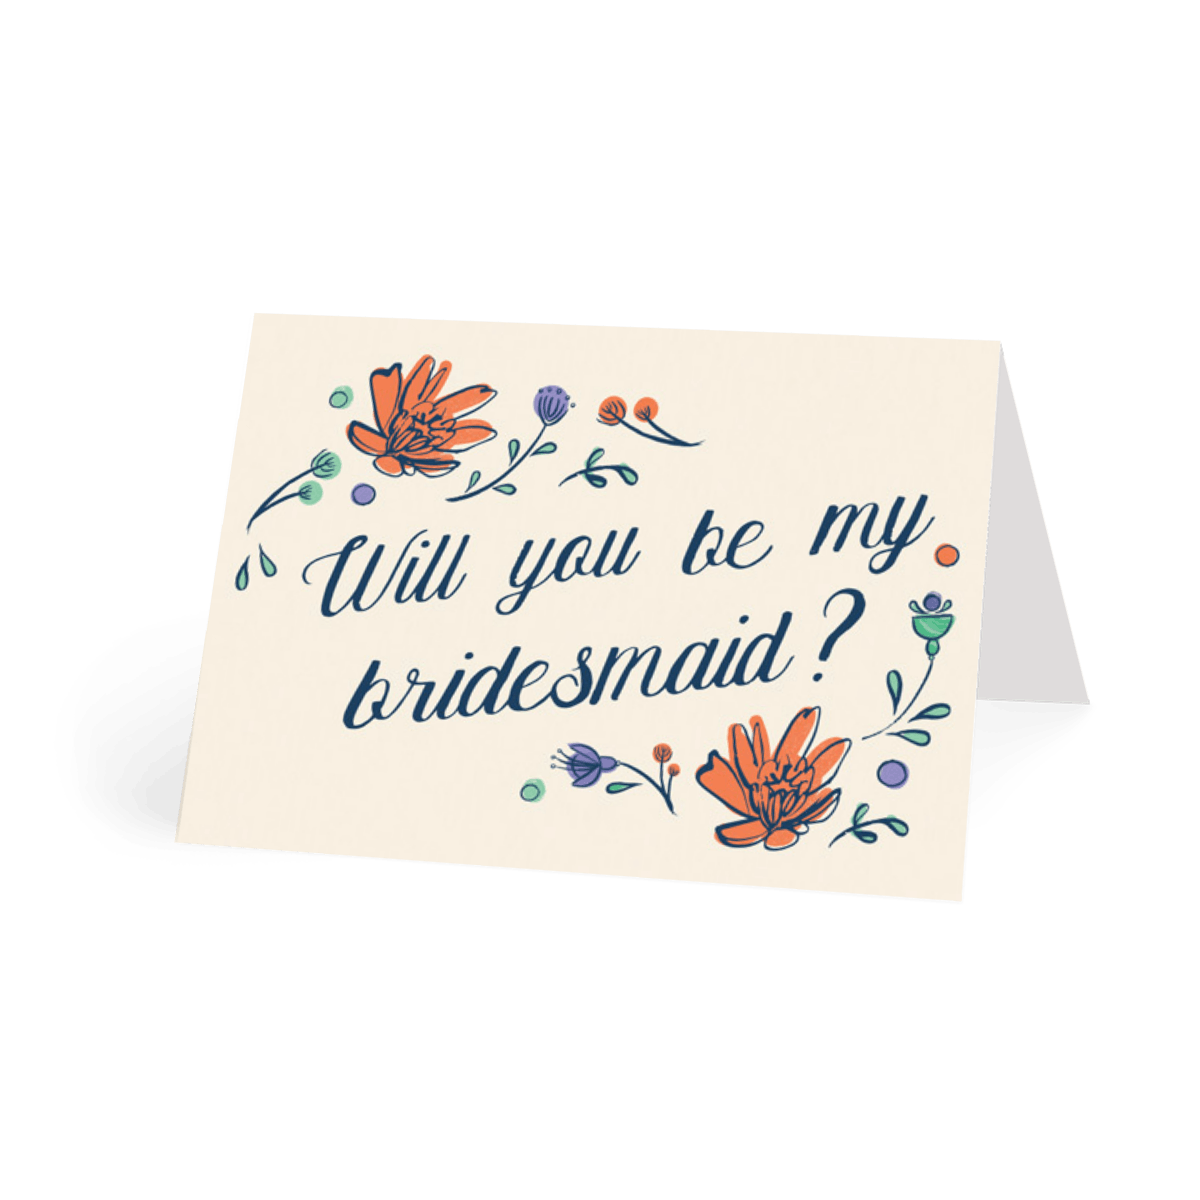 Https%3a%2f%2fwww.papier.com%2fproduct image%2f9770%2f14%2fwill you be my bridesmaid floral 2484 front 1469702824.png?ixlib=rb 1.1